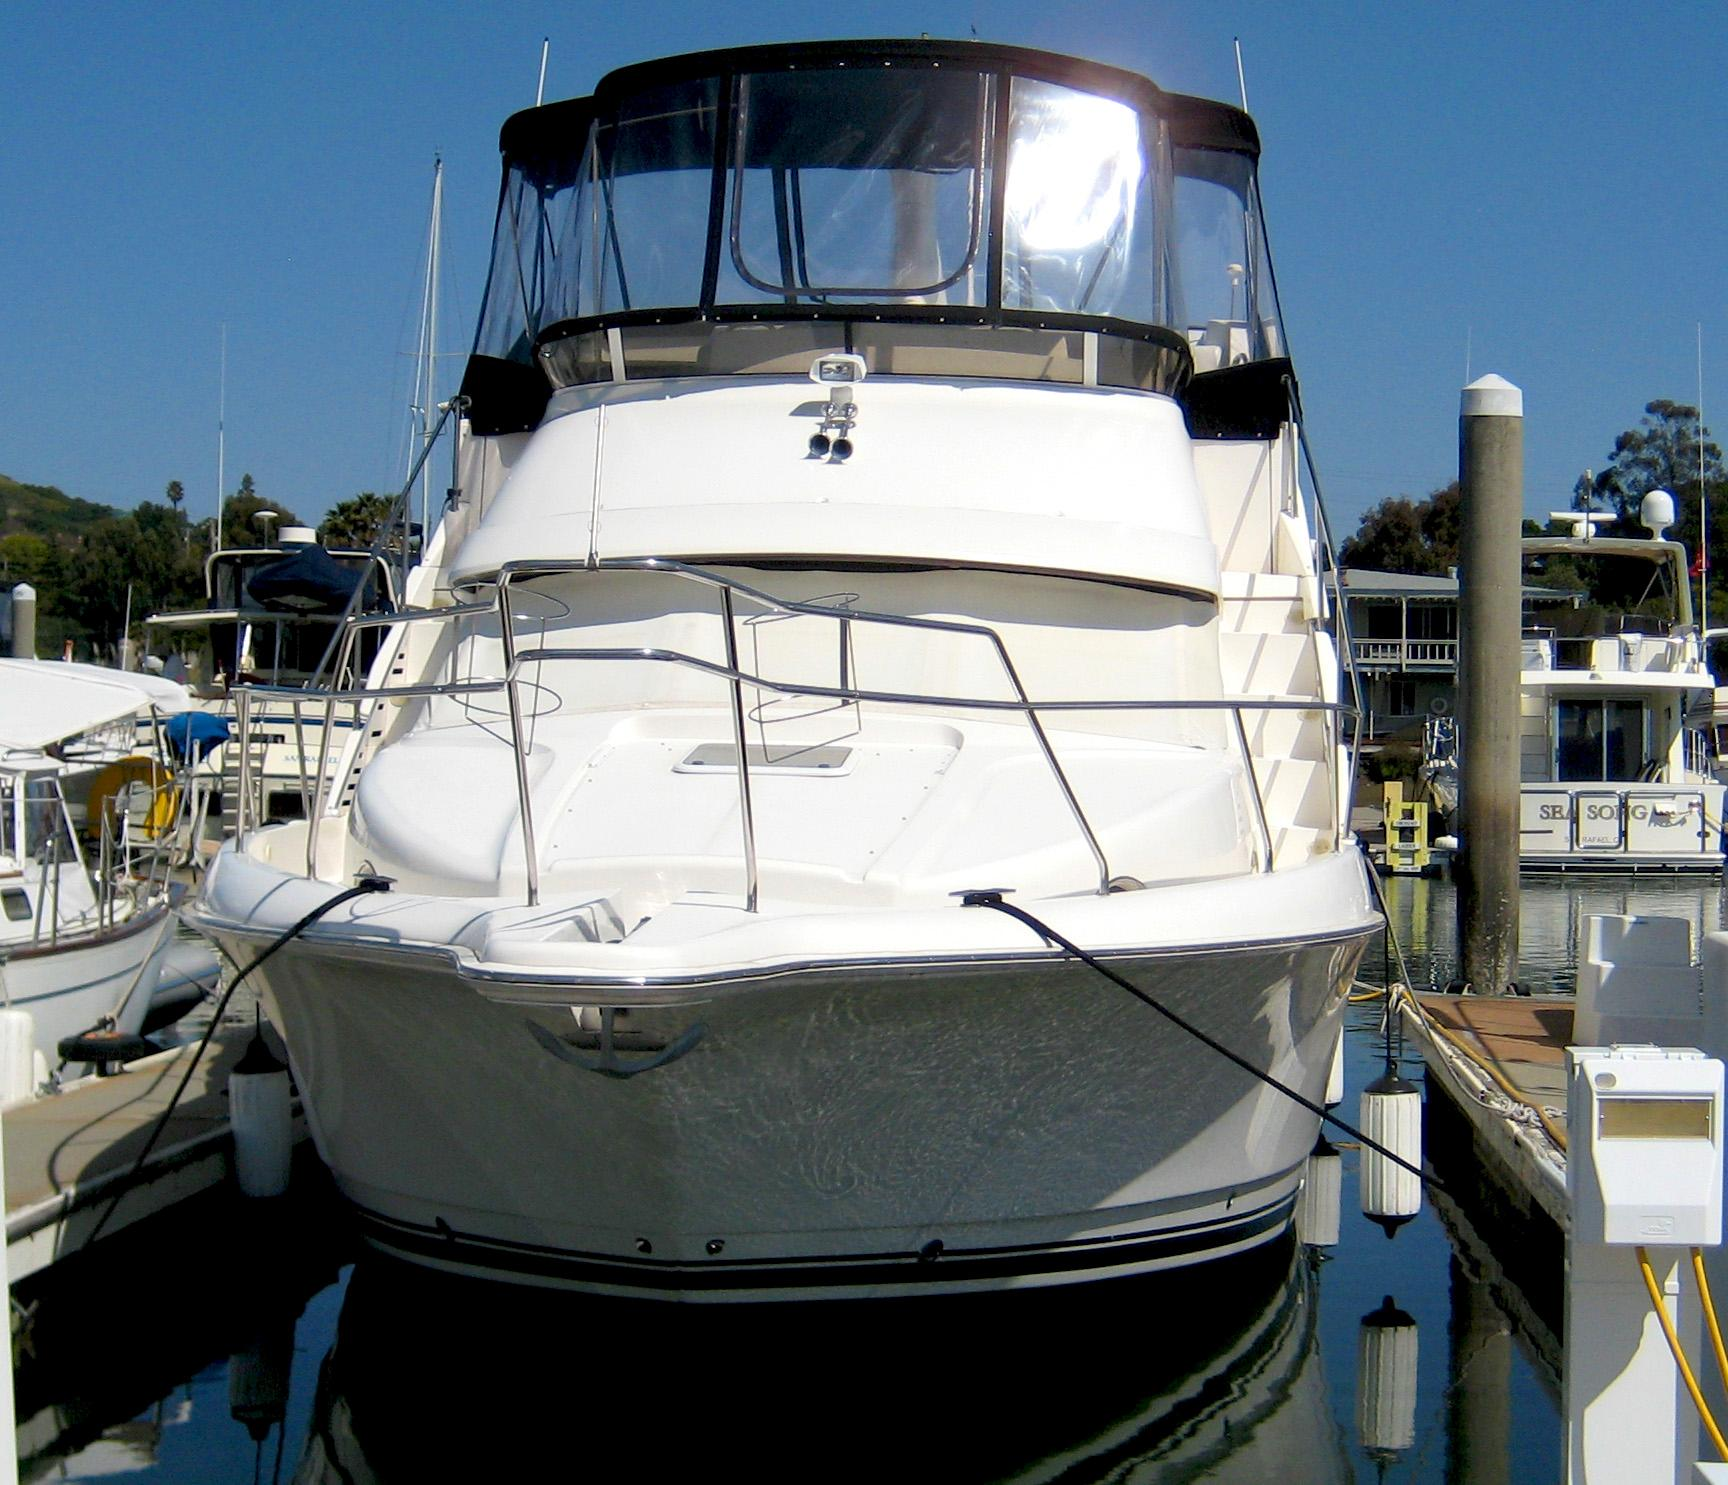 39 silverton 2000 closer to the sun for sale in san rafael for Silverton motor yachts for sale